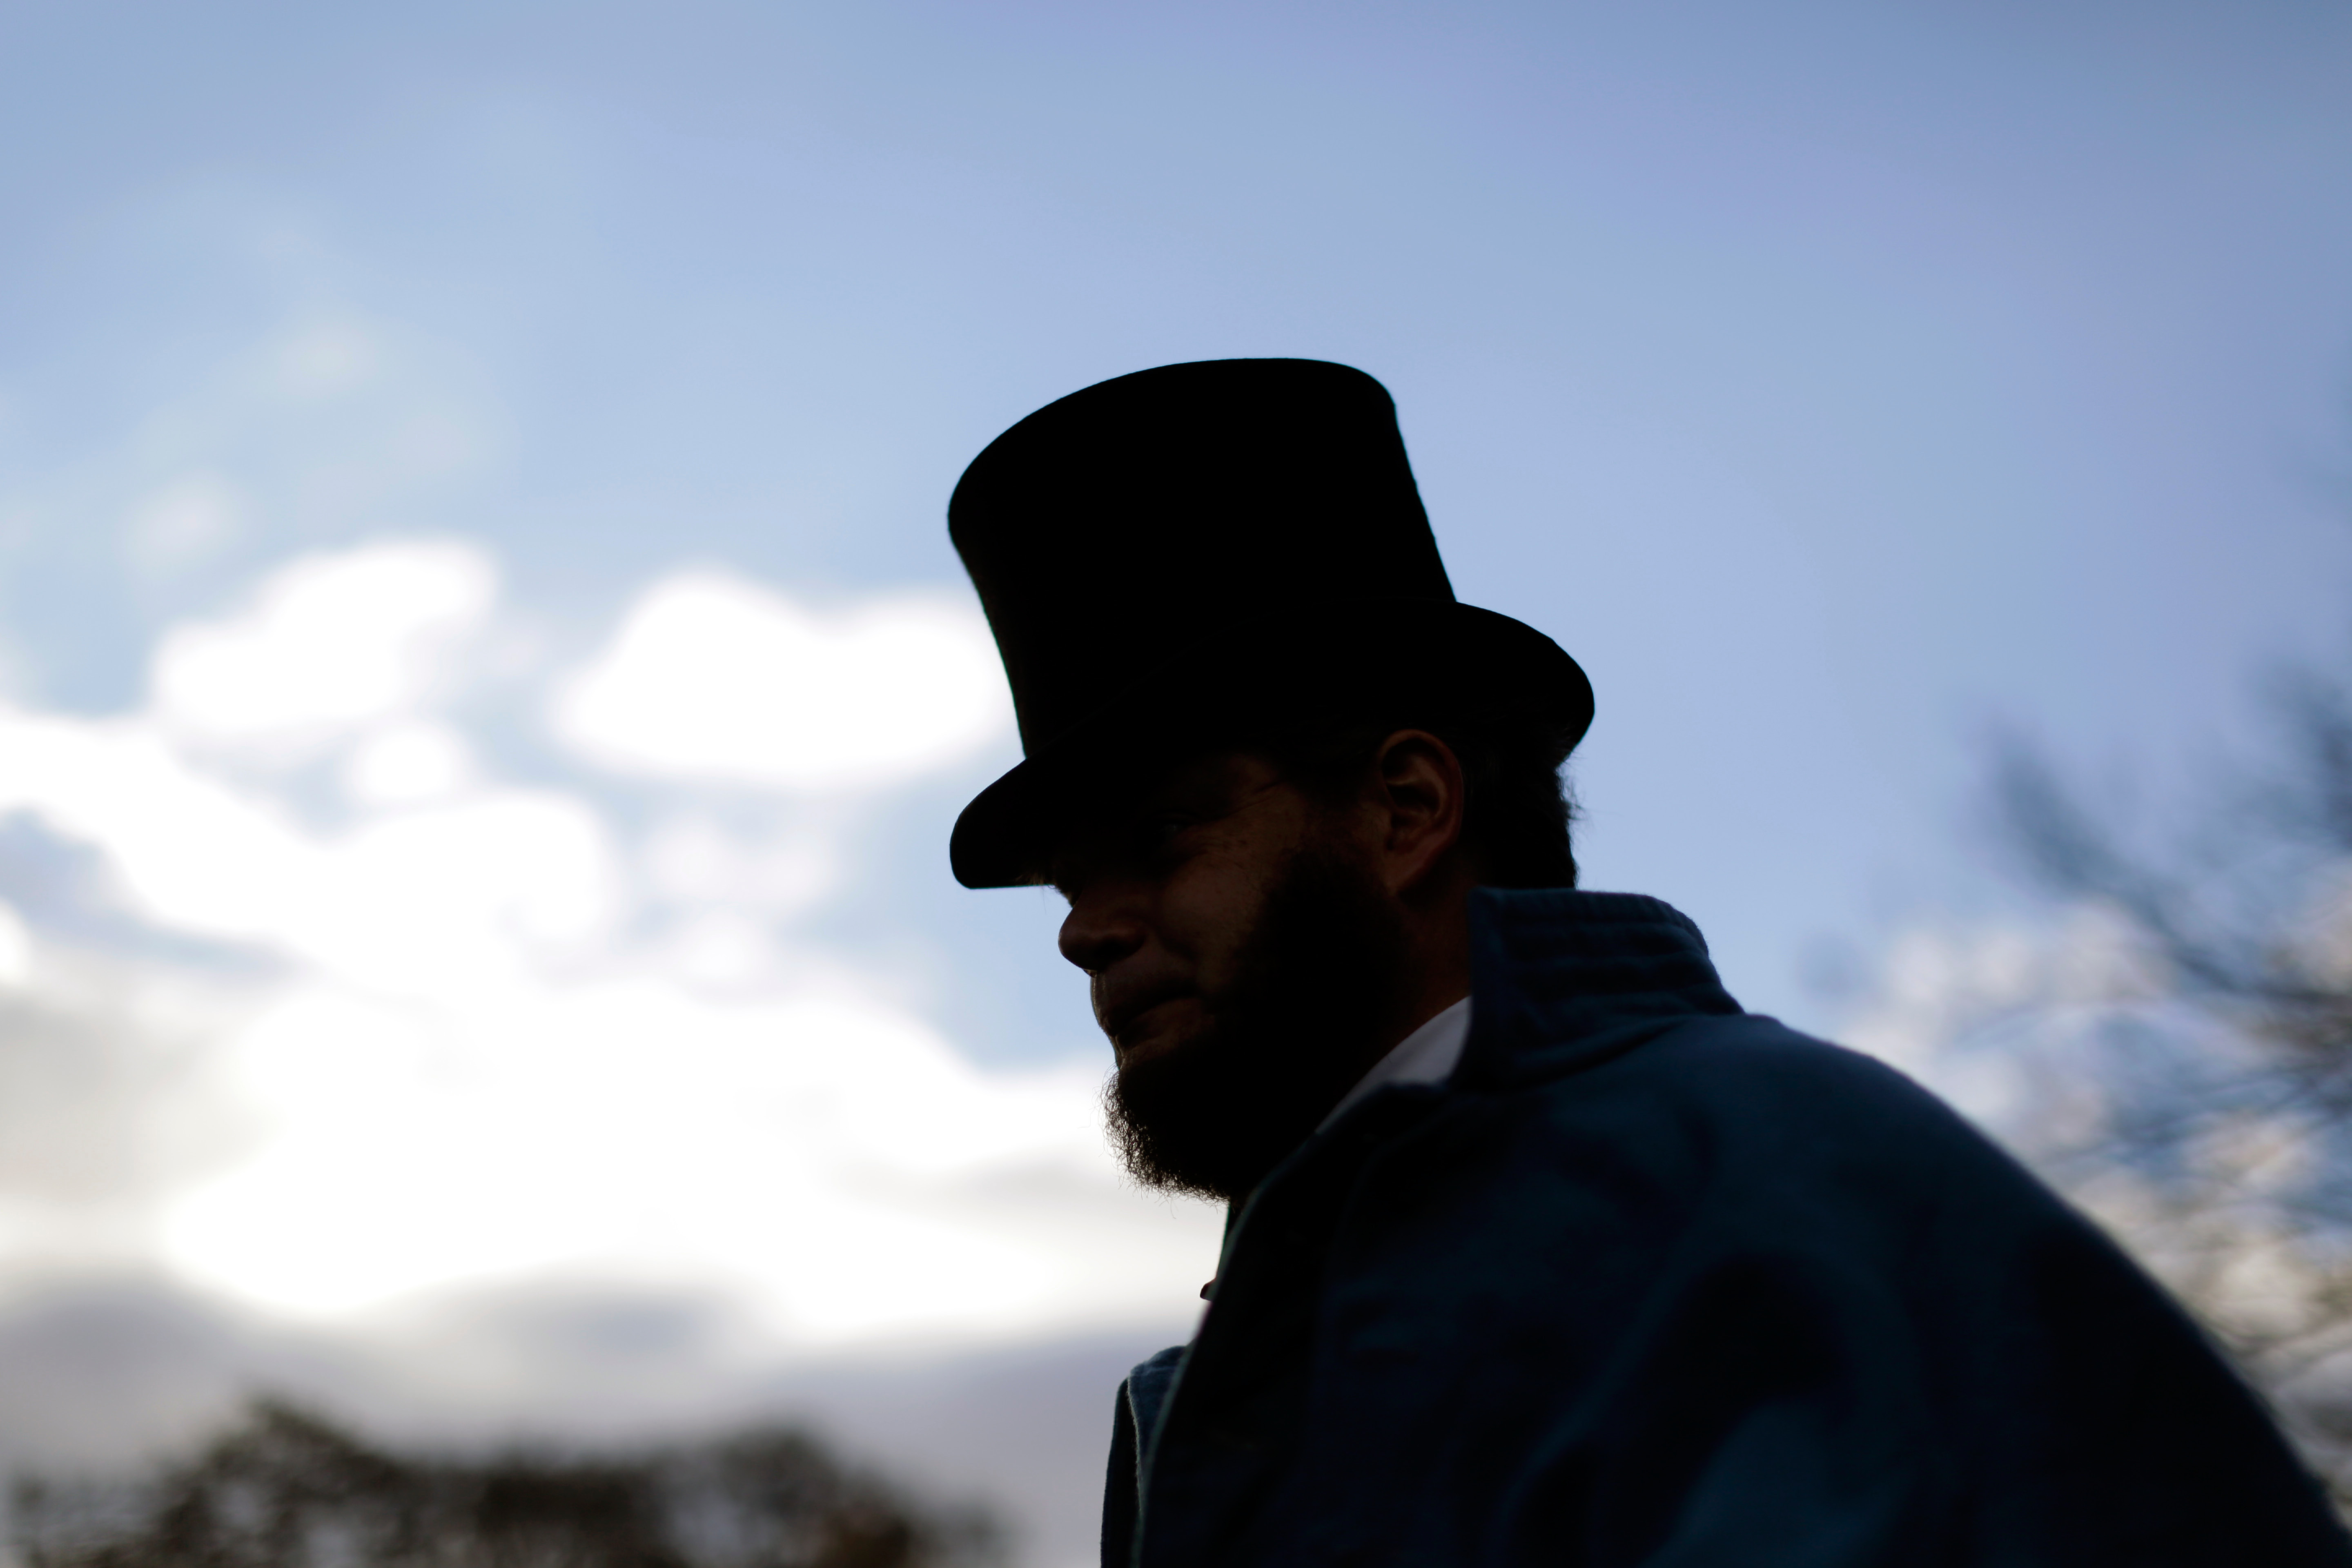 Bryce Stenzel of Mankato Minn., dressed as Abraham Lincoln, arrives before a ceremony commemorating the 150th anniversary of the dedication of the Soldiers National Cemetery and President Abraham Lincoln